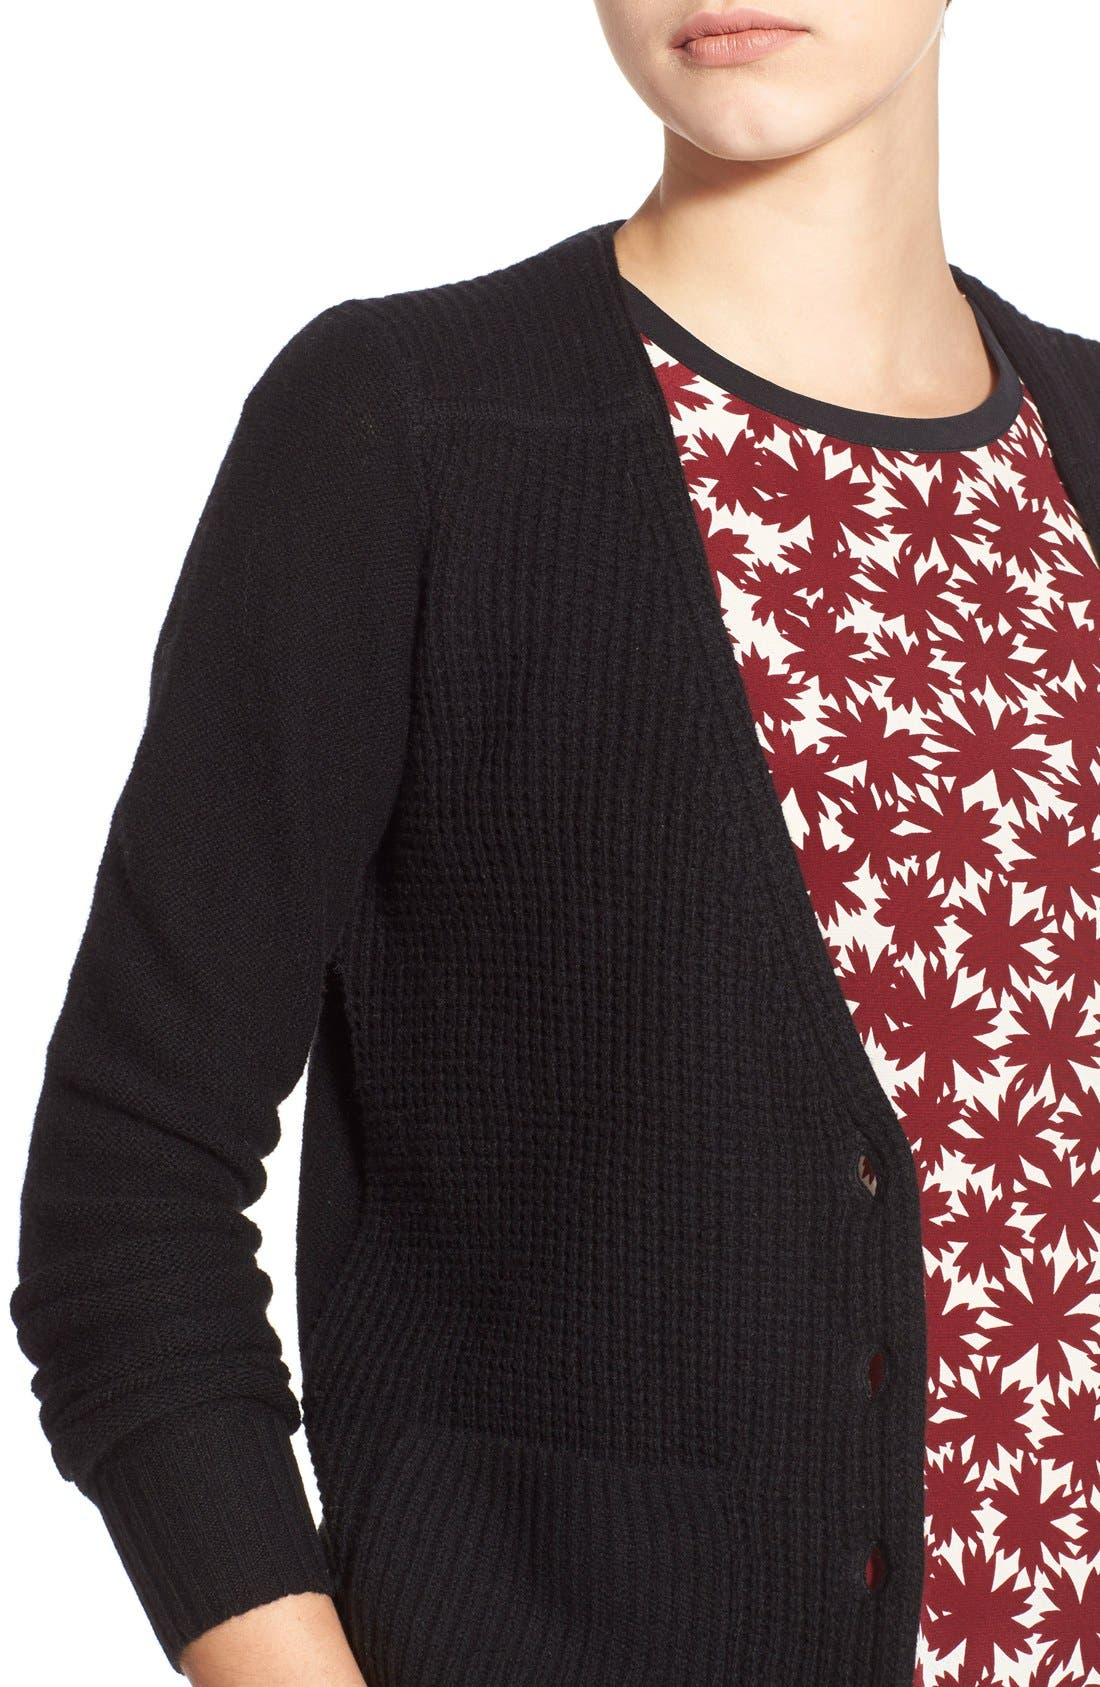 MADEWELL,                             'University' Cardigan,                             Alternate thumbnail 4, color,                             001